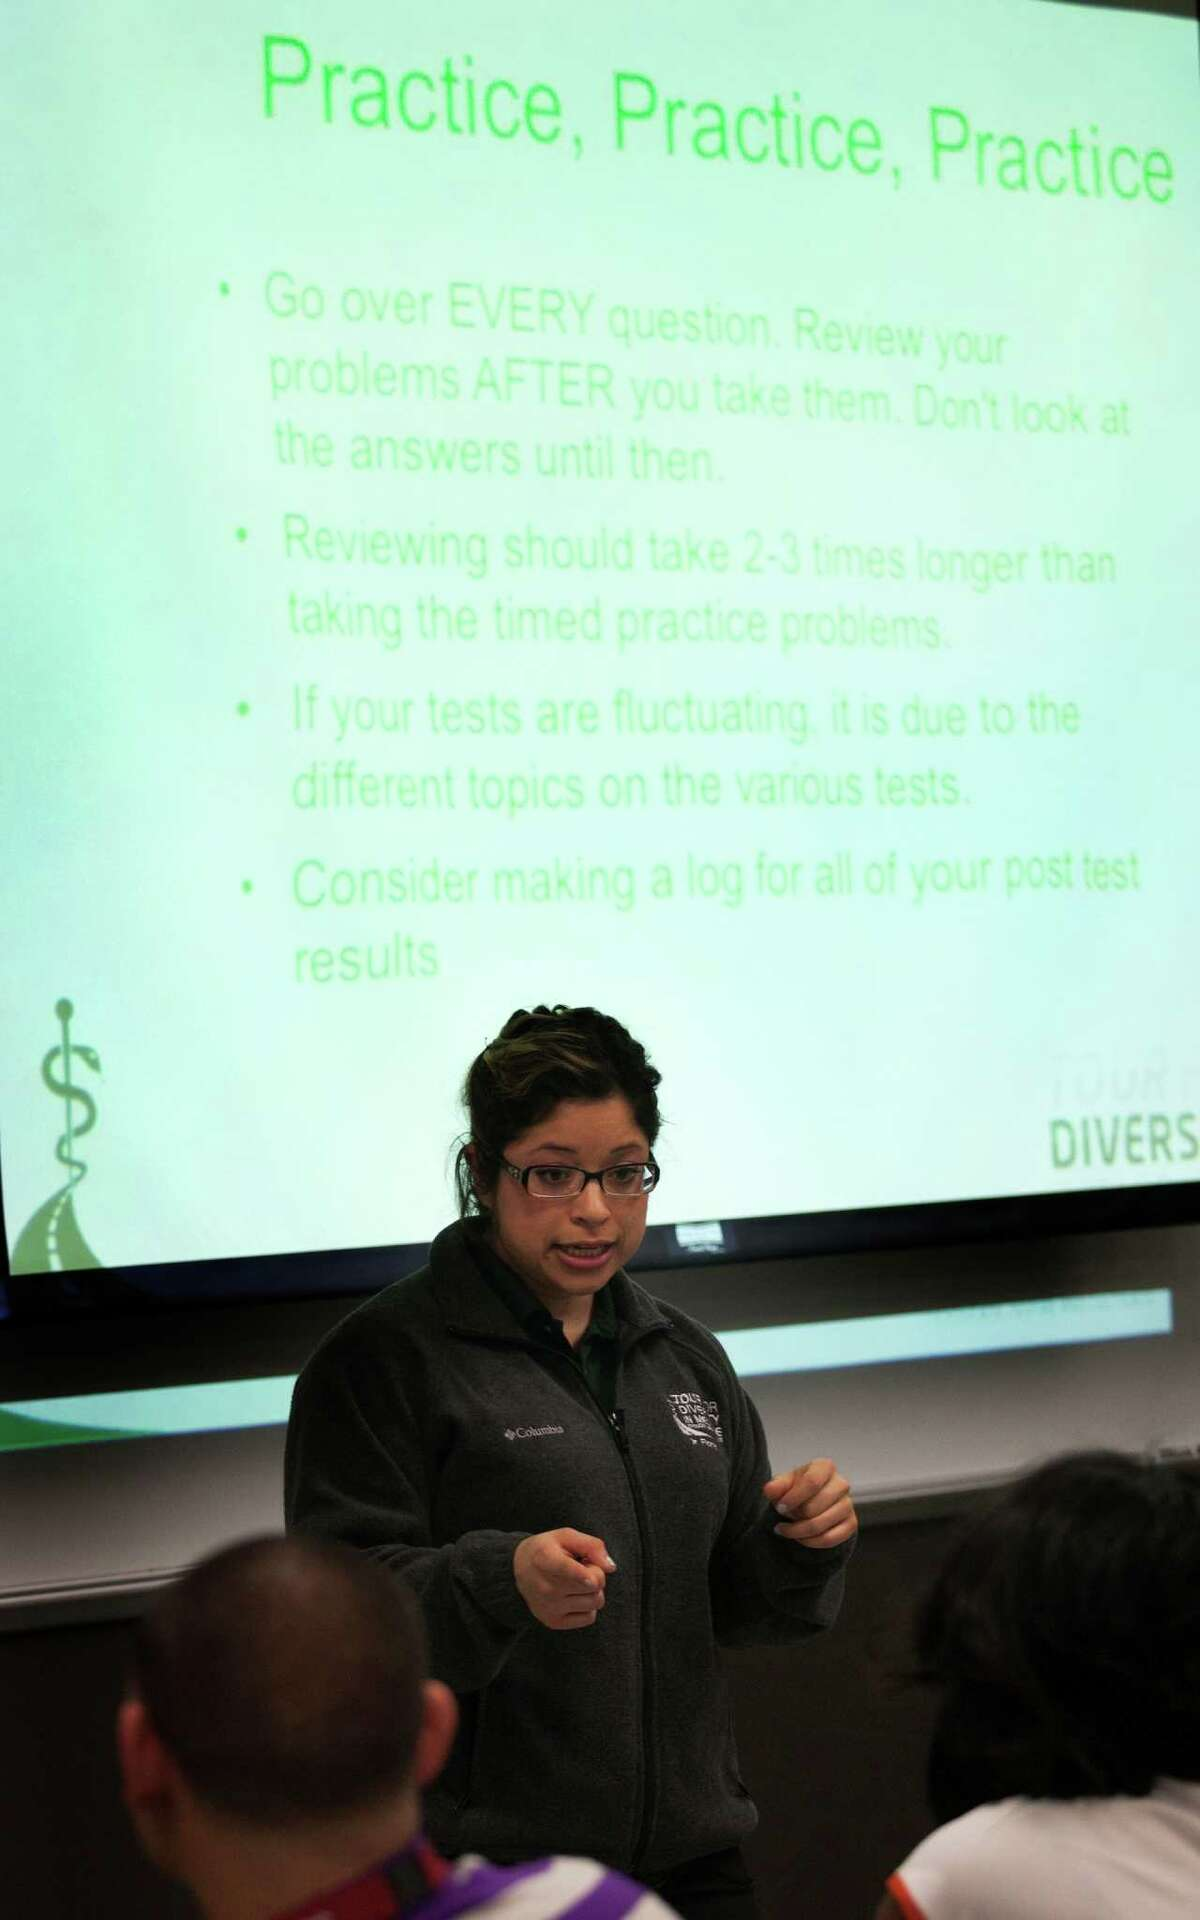 Fourth year medical student Erika Flores-Uribe answers question about the MCAT test during the Tour for Diversity in Medicine at Texas Southern University on Saturday, Feb. 16, 2013, in Houston. The tour was on campus this weekend to encourage minority students to pursue careers in medicine and dentistry.